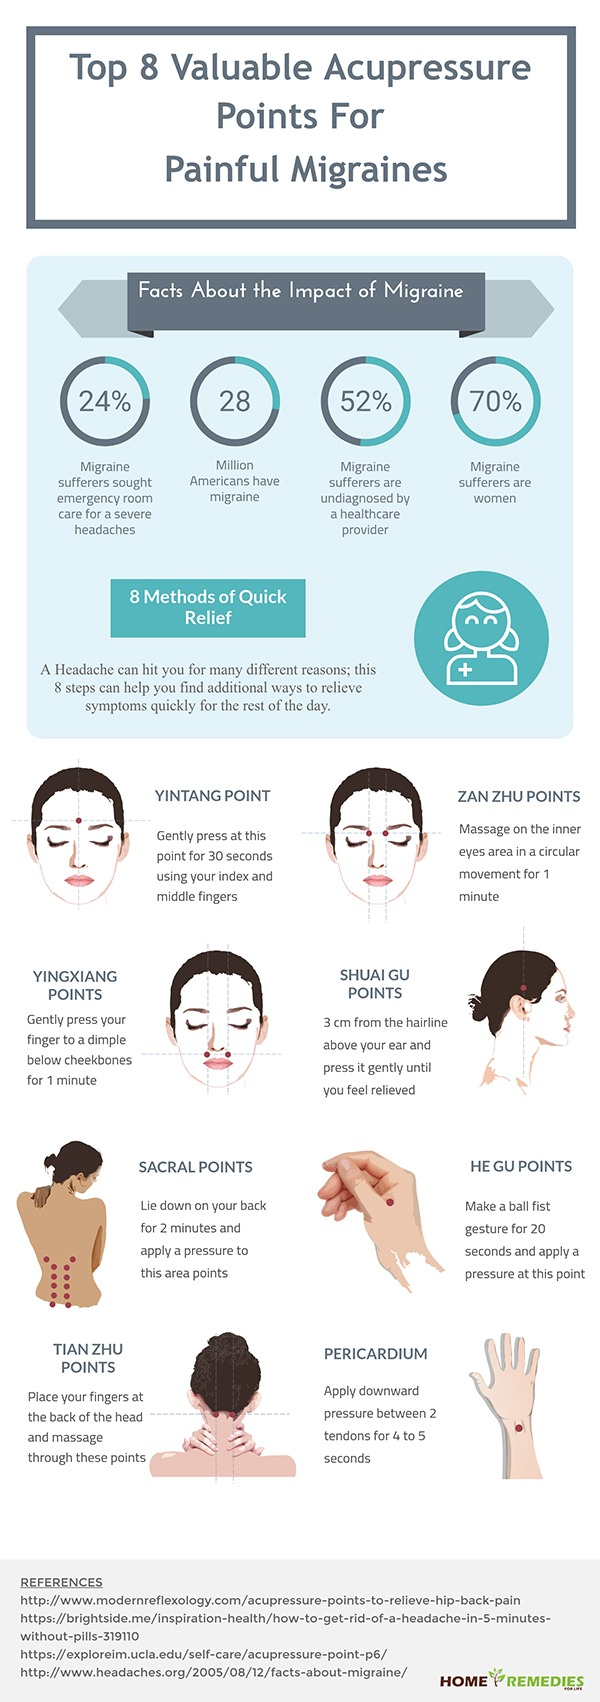 Top 8 Valuable Acupressure Points for Painful Migraines